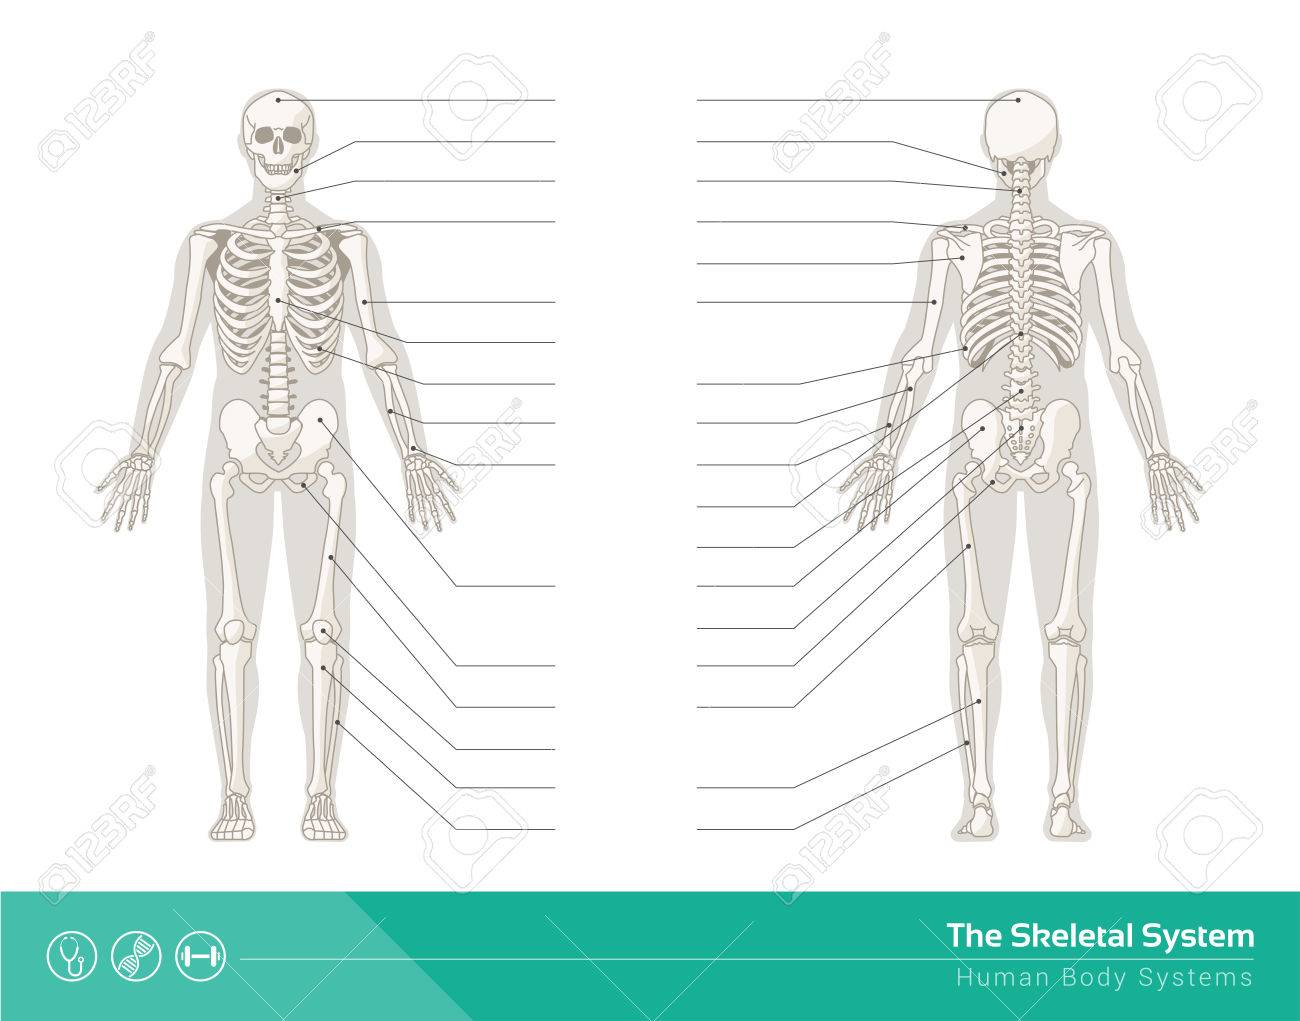 The Human Skeletal System Vector Illustrations Of Human Skeleton